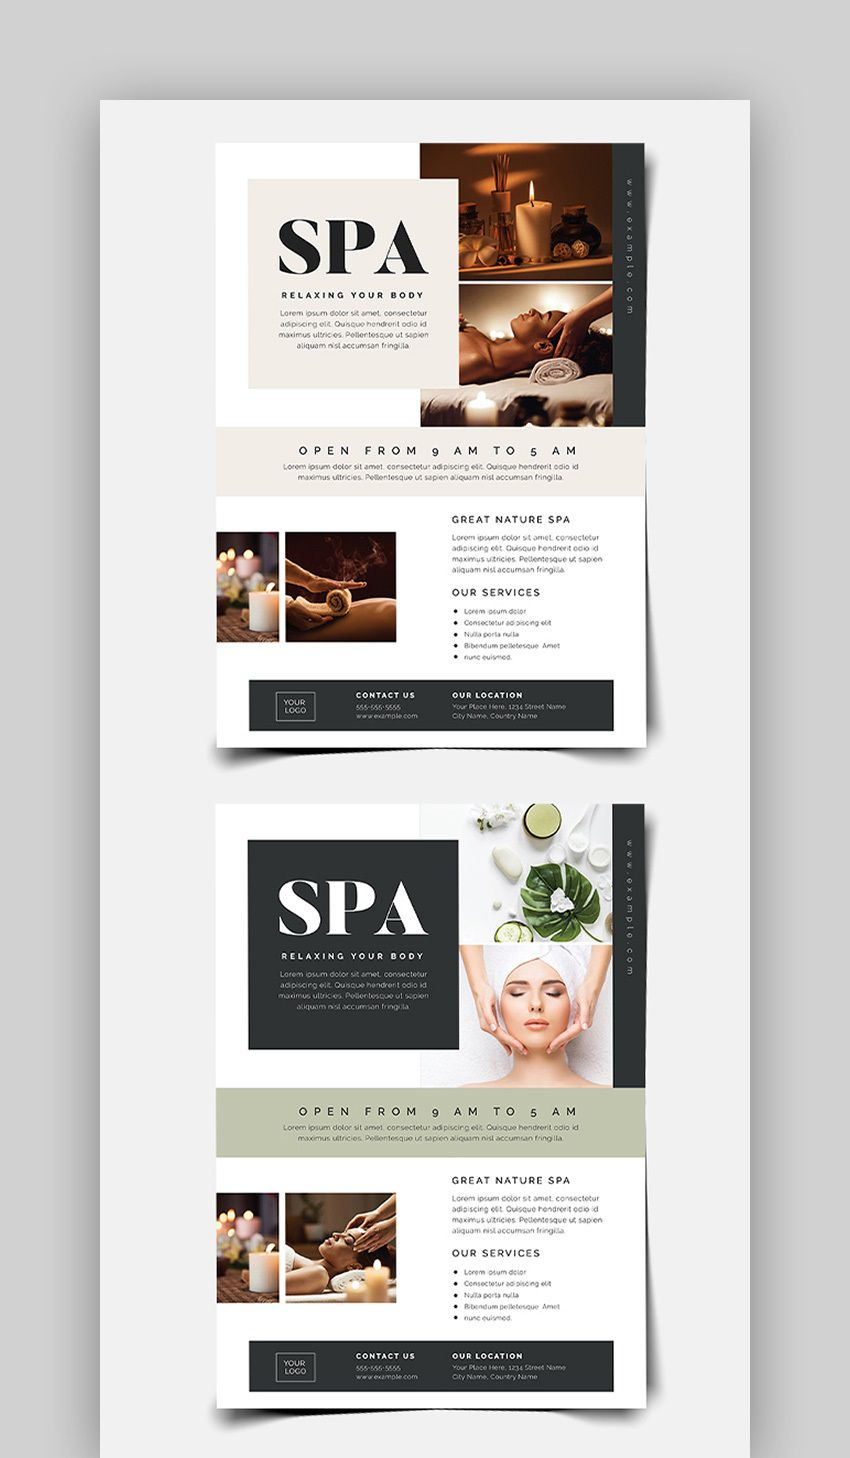 008 Surprising Photoshop Brochure Template Psd Free Download High Def Full